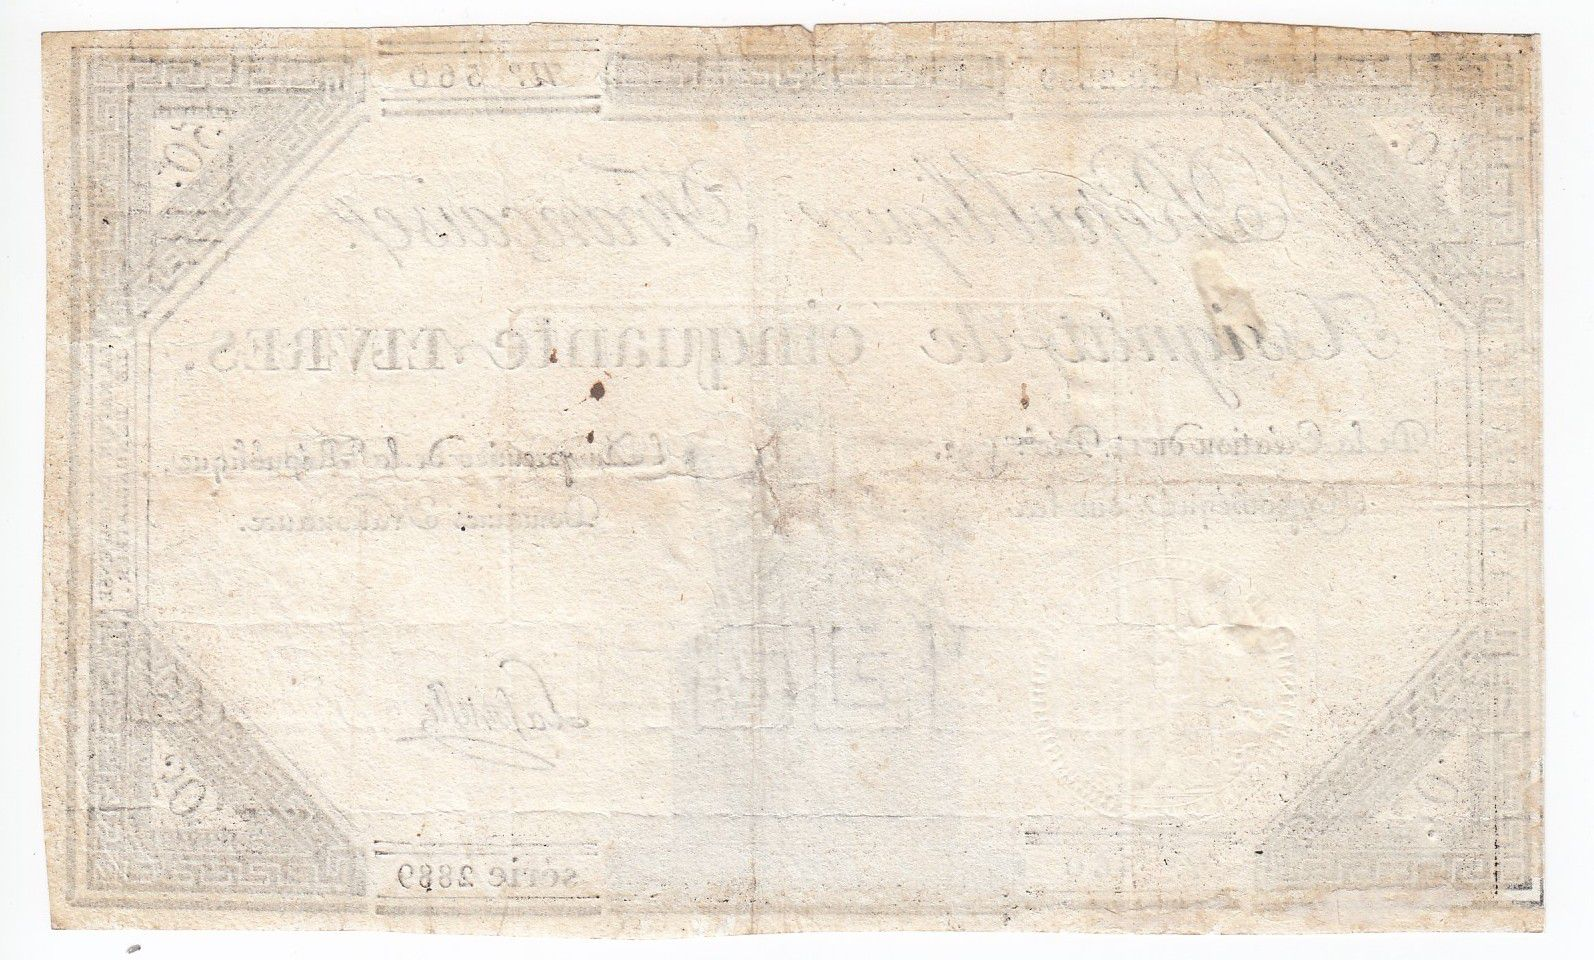 France 50 Livres France assise - 14-12-1792 - Sign. Lafortelle - TTB